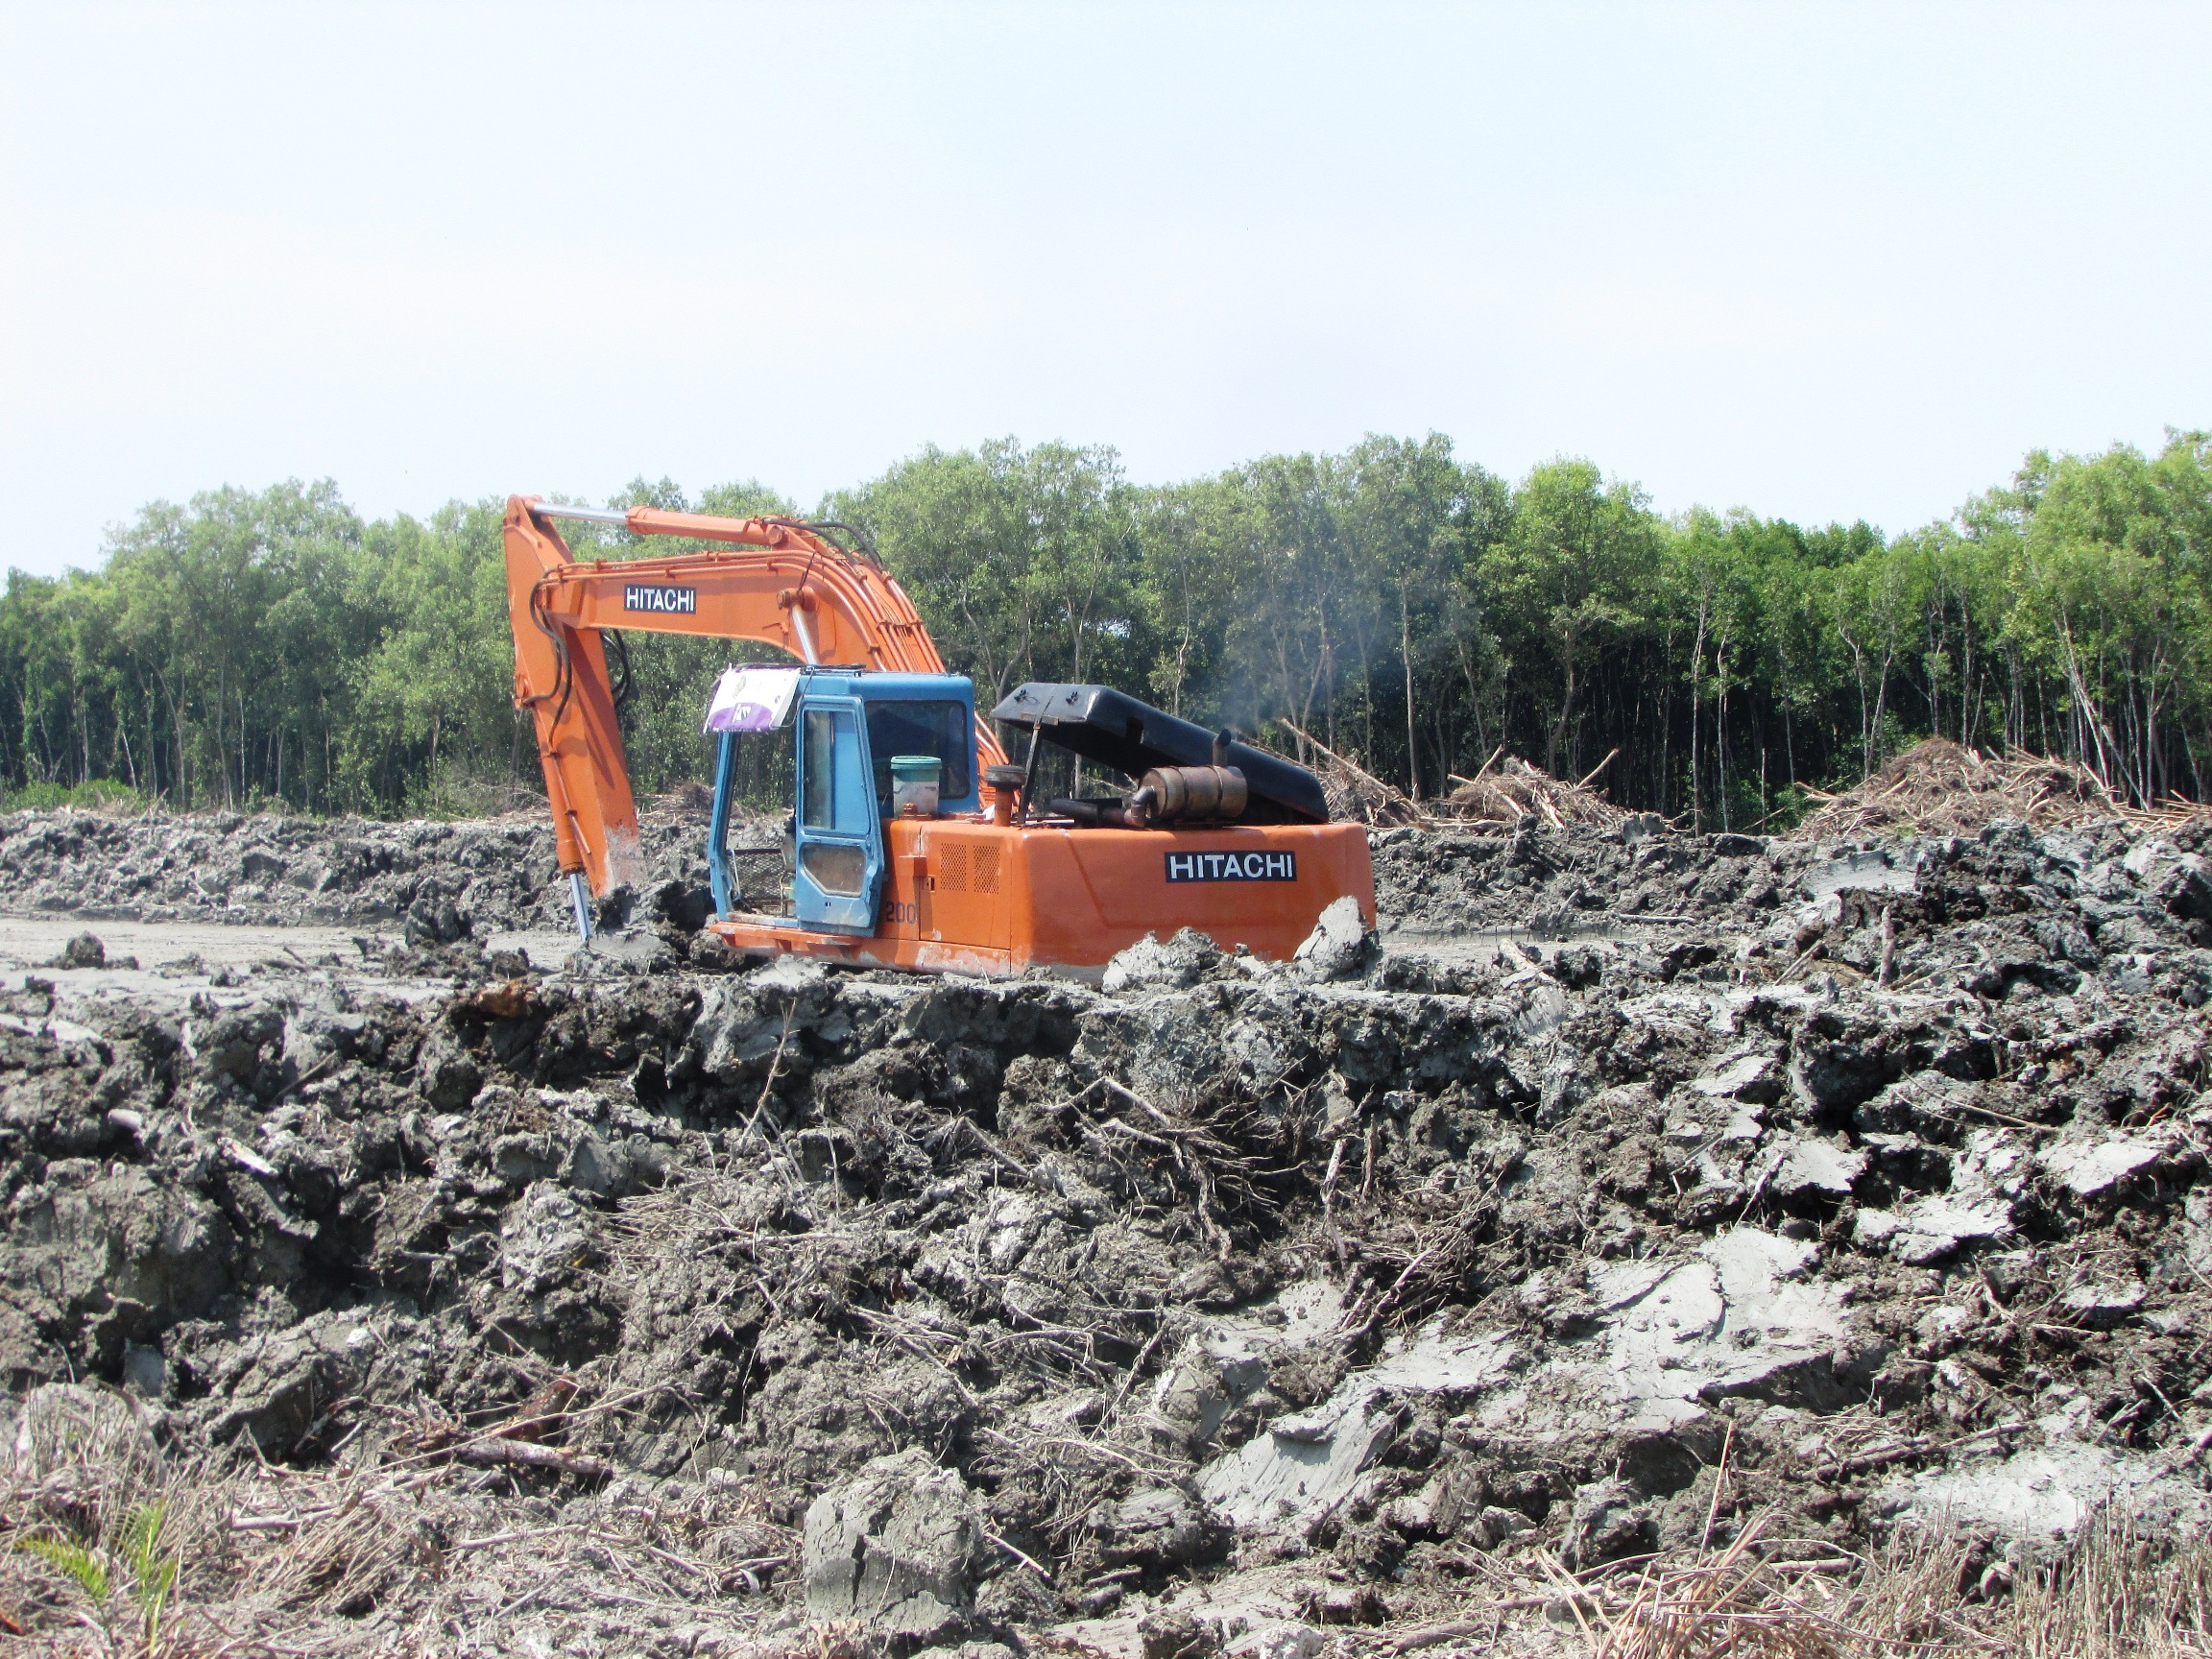 Destruction of mangrove forests currently taking place in Balik Pulau, Penang